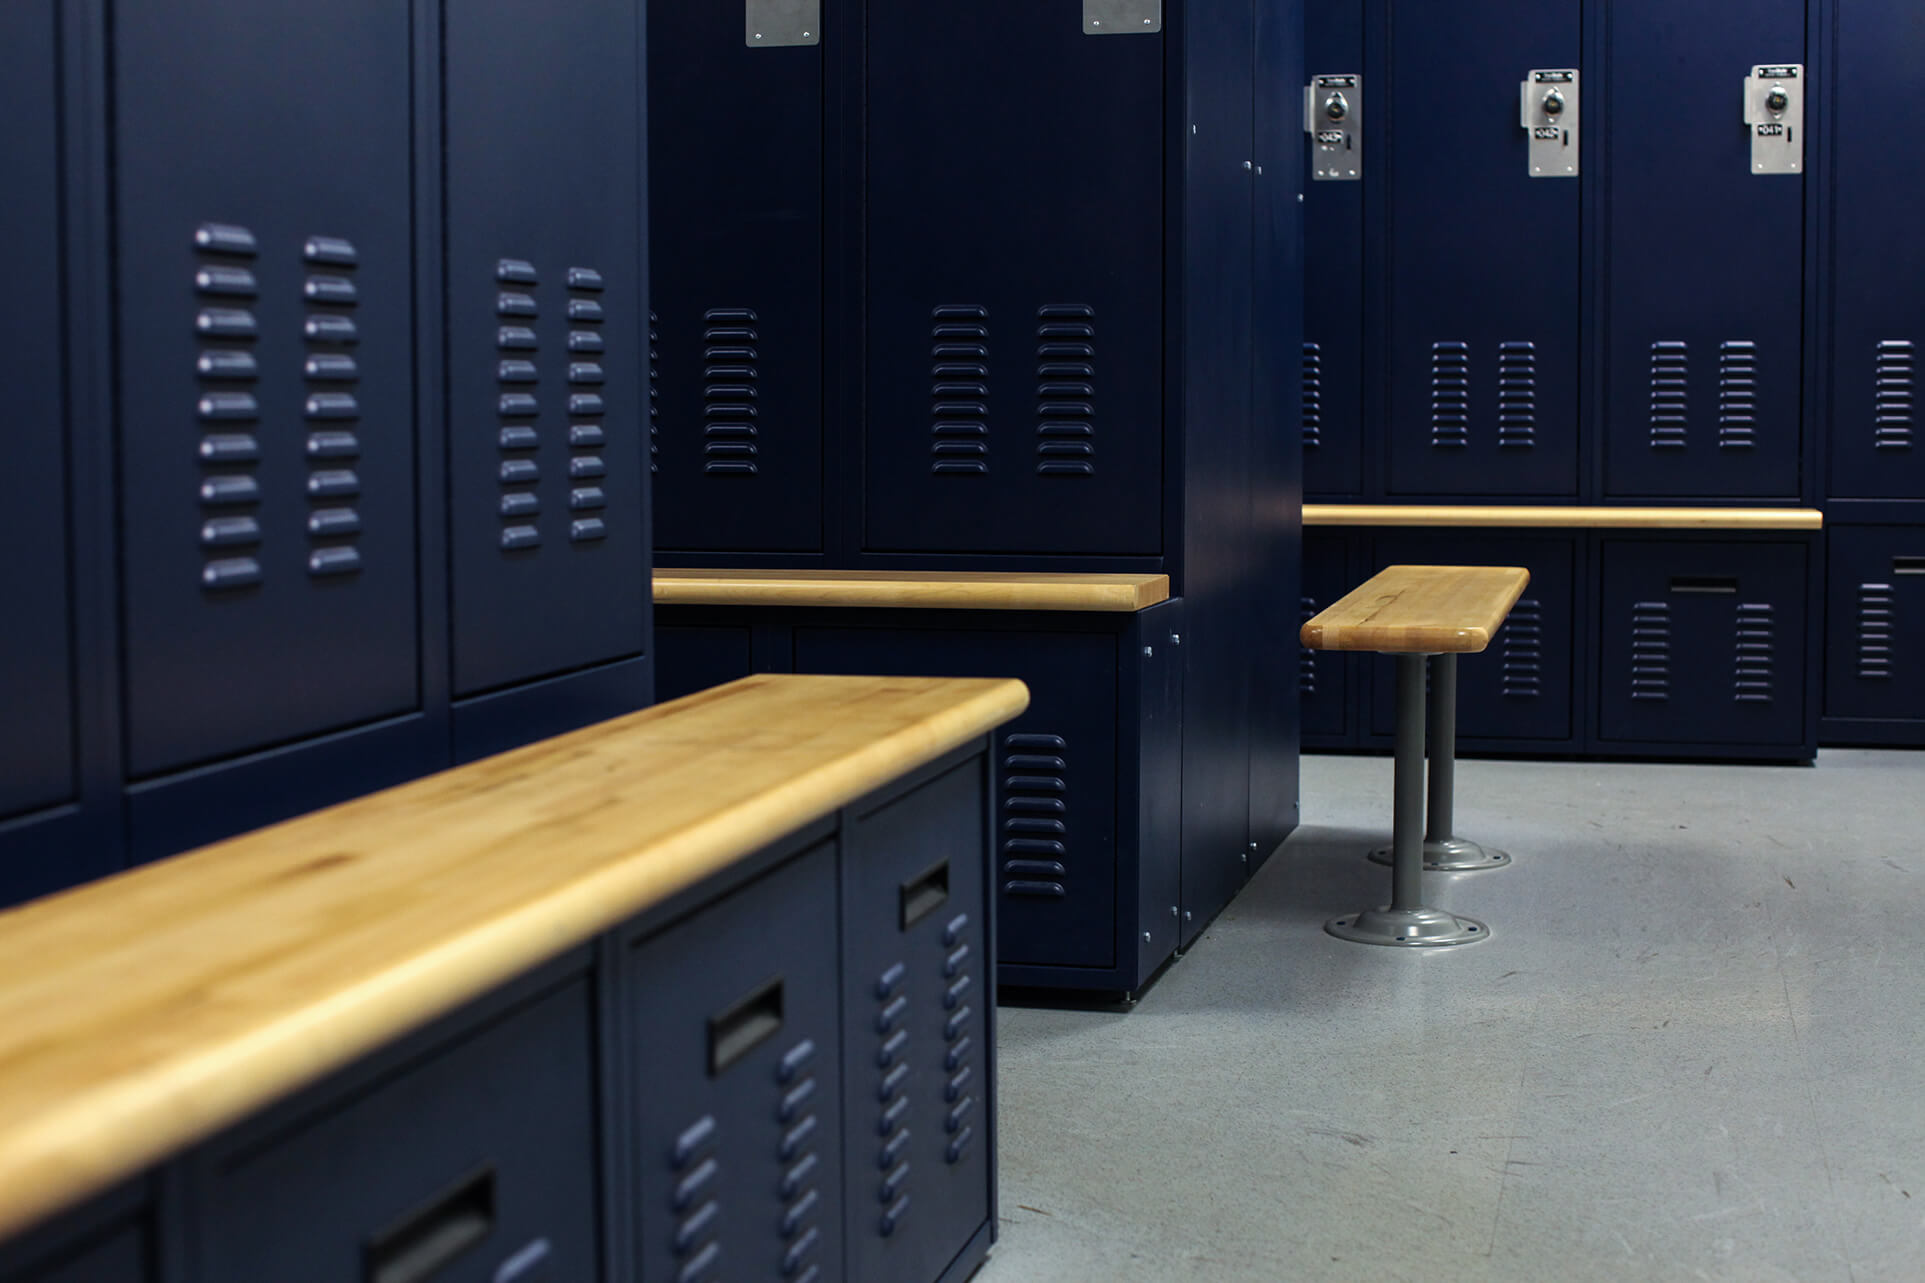 Secure drawers for locker storage at Bensalem, Pennsylvania Police Department